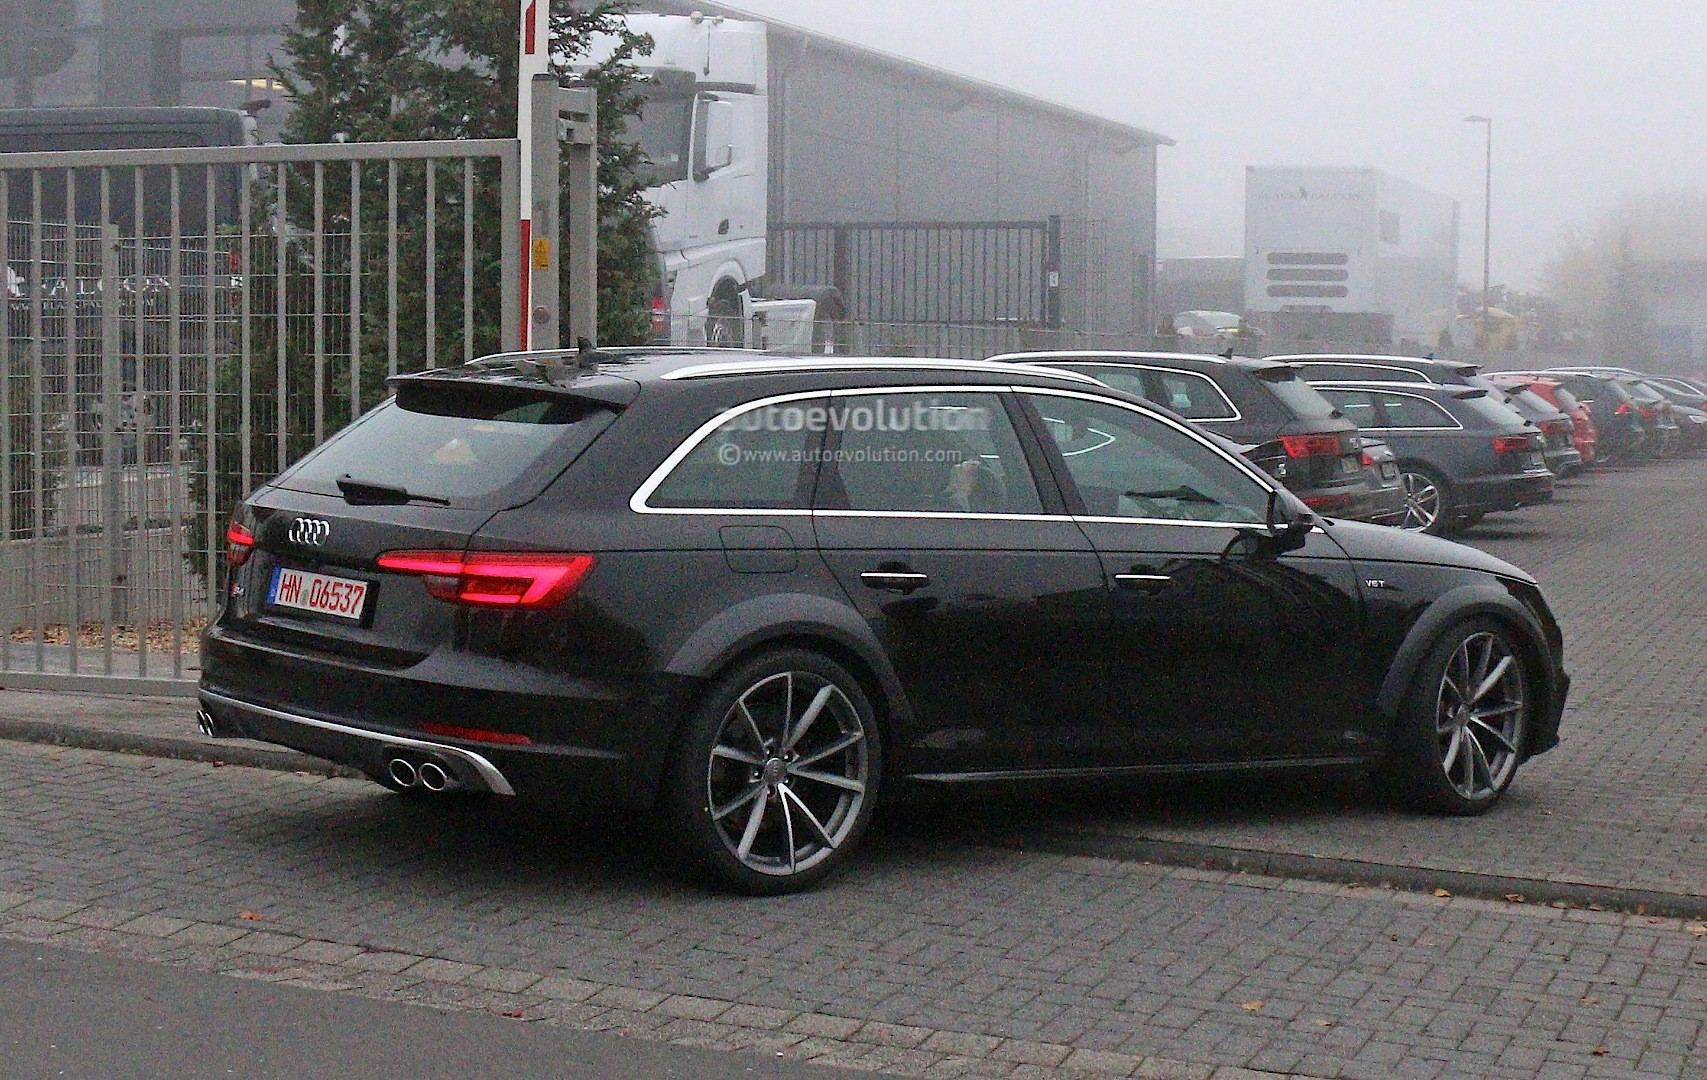 Audi Rs4 2018 >> Early 2018 Audi RS4 Avant Chassis Testing Mule: This Could Be It - autoevolution